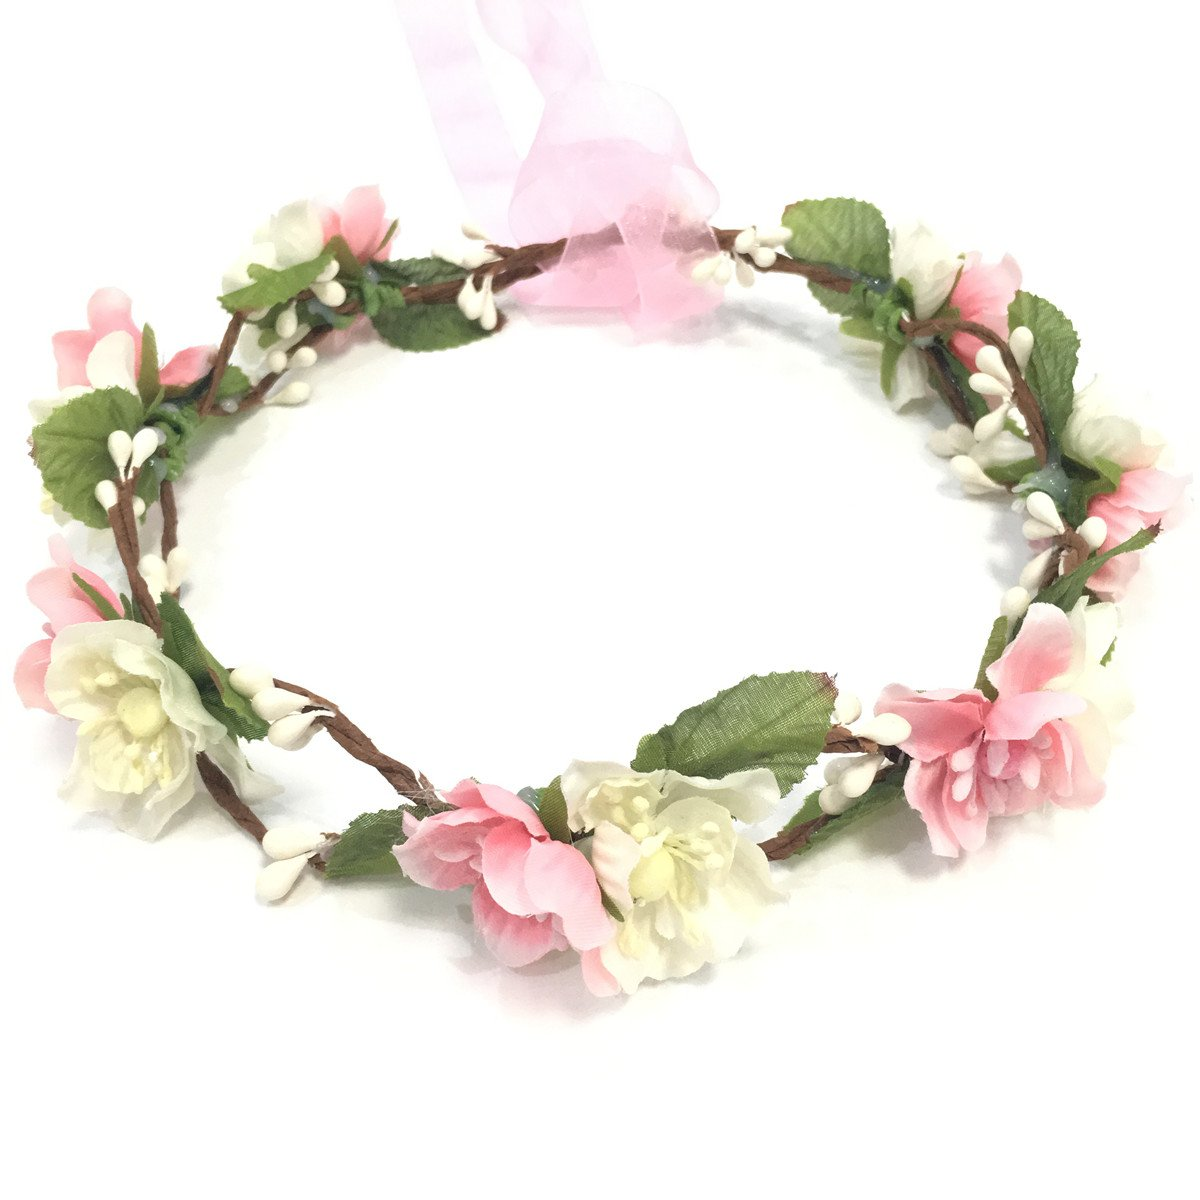 Amazon.com : Bridal Flower Crown Floral Crown Wedding Wreath Boho ...